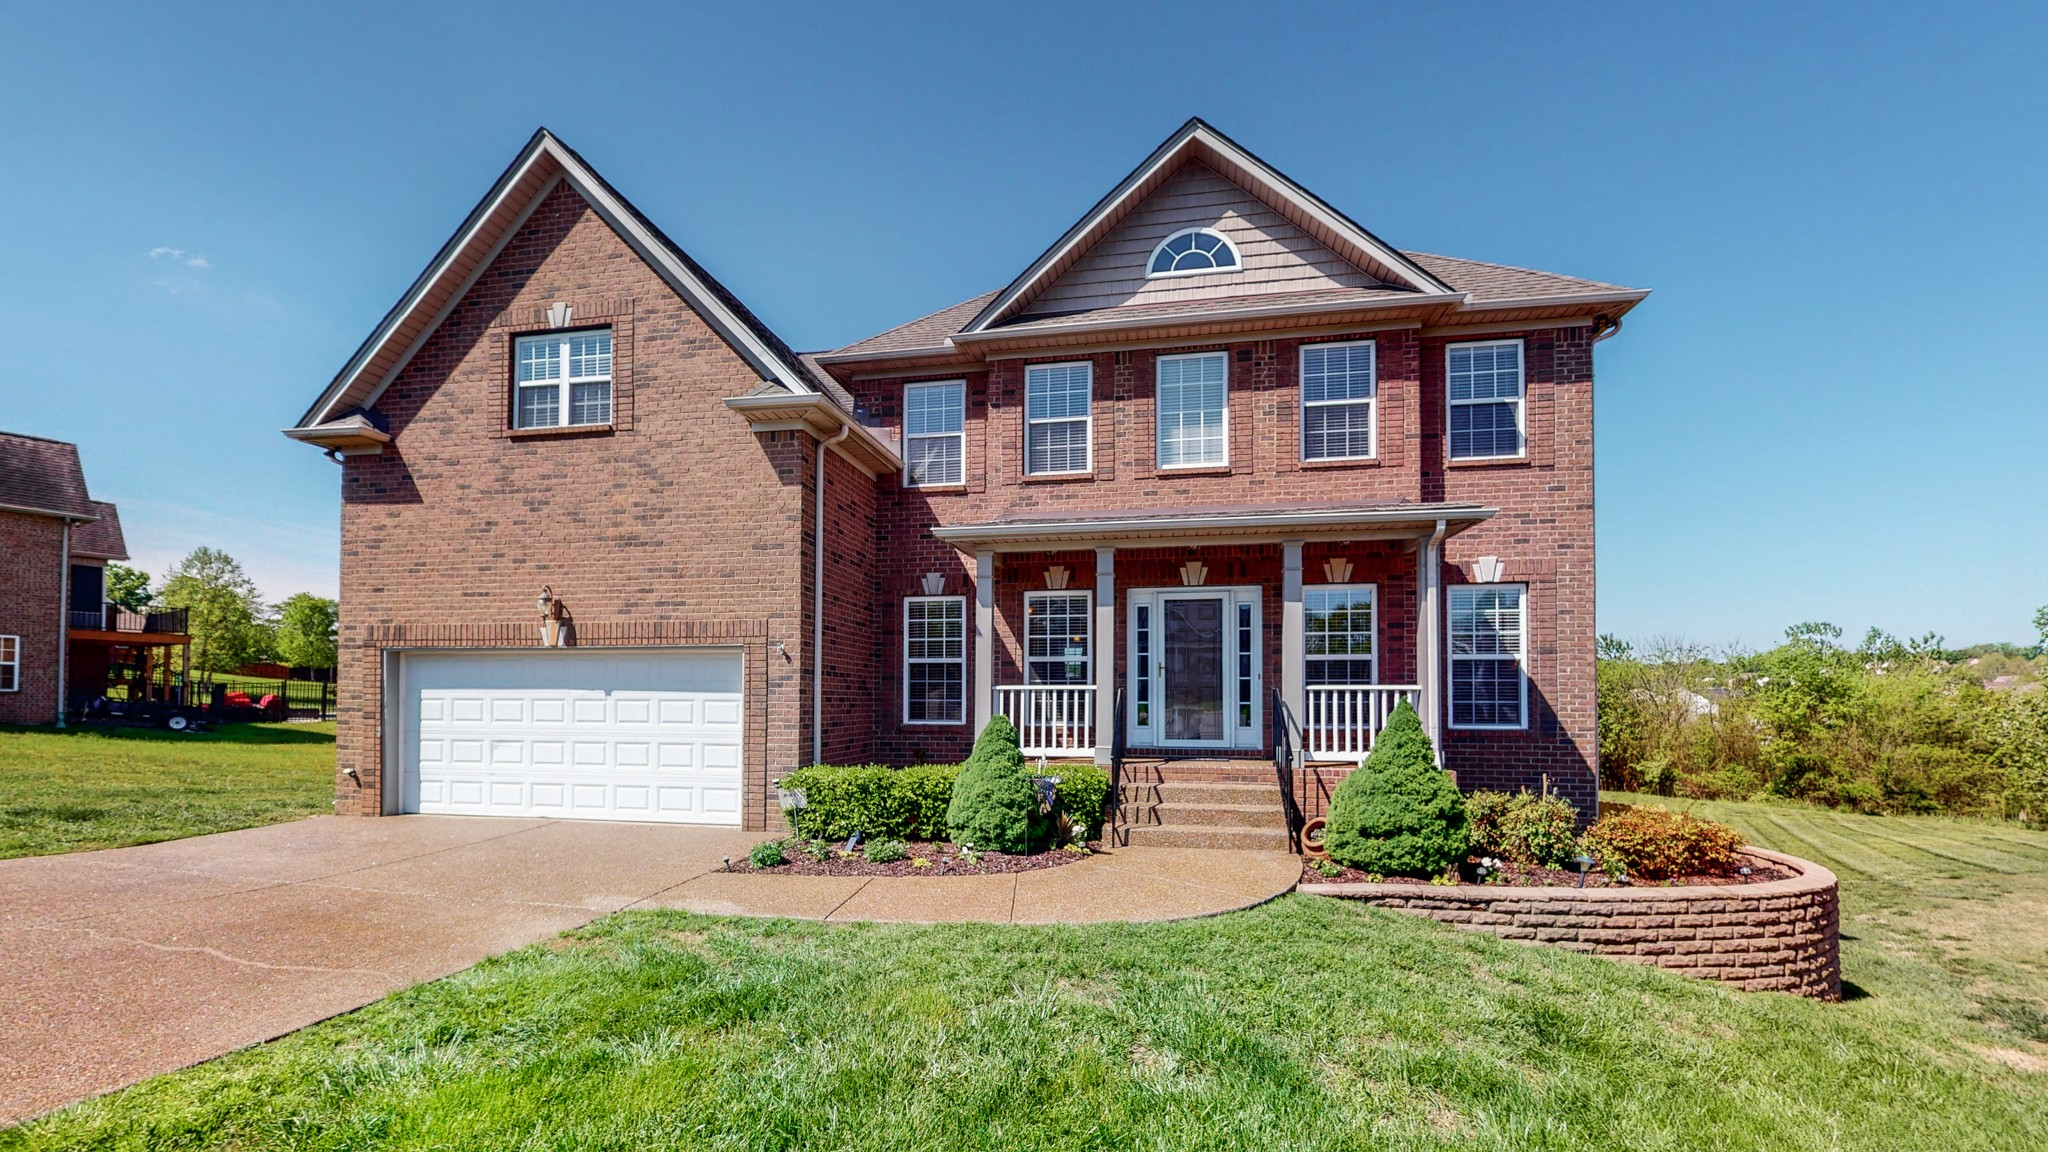 9121 Brooks Xing Property Photo - Mount Juliet, TN real estate listing